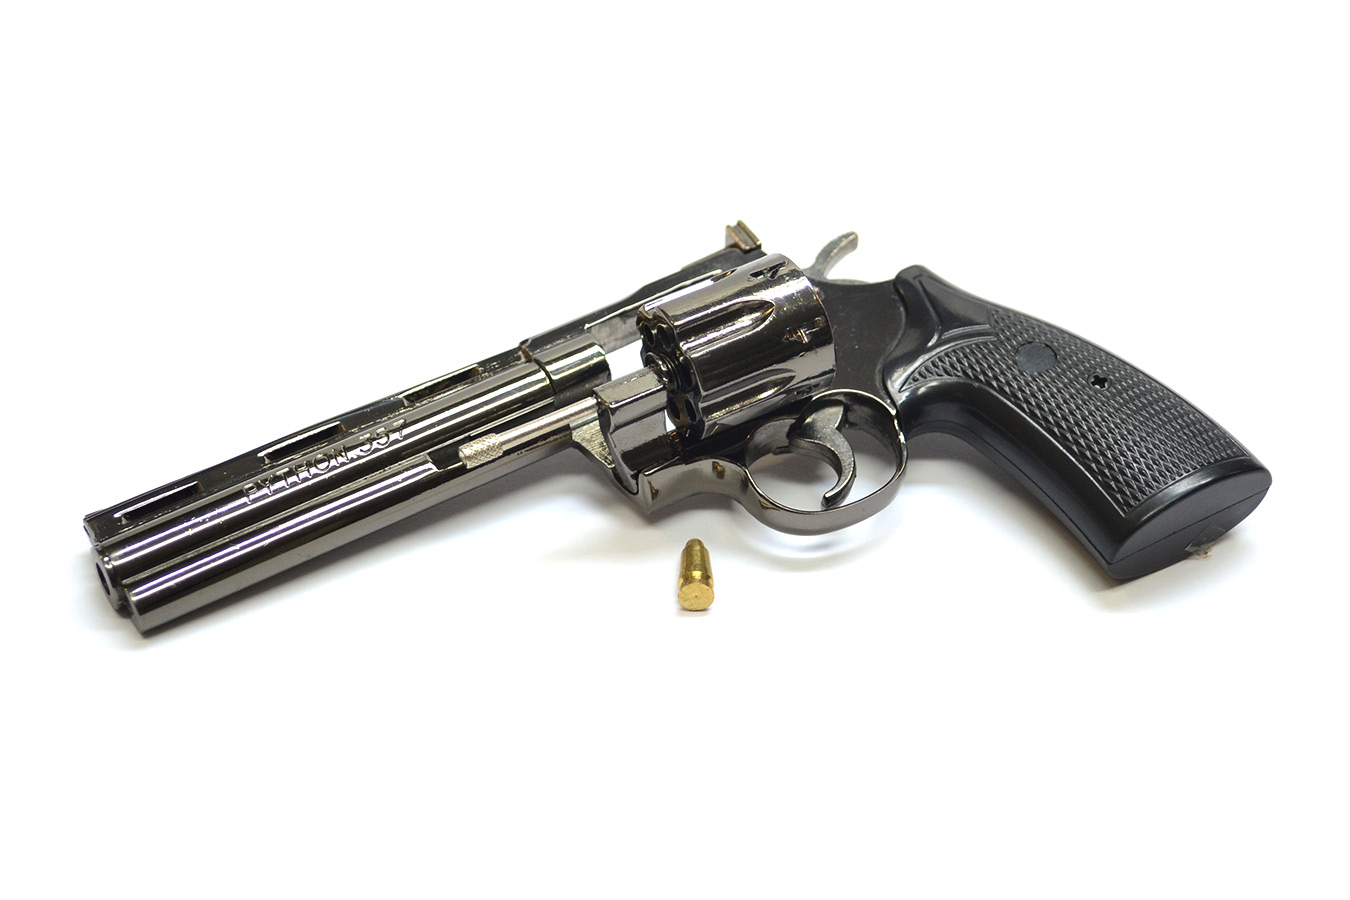 Model revolver Colt Python 357 in the scale of 1: 2